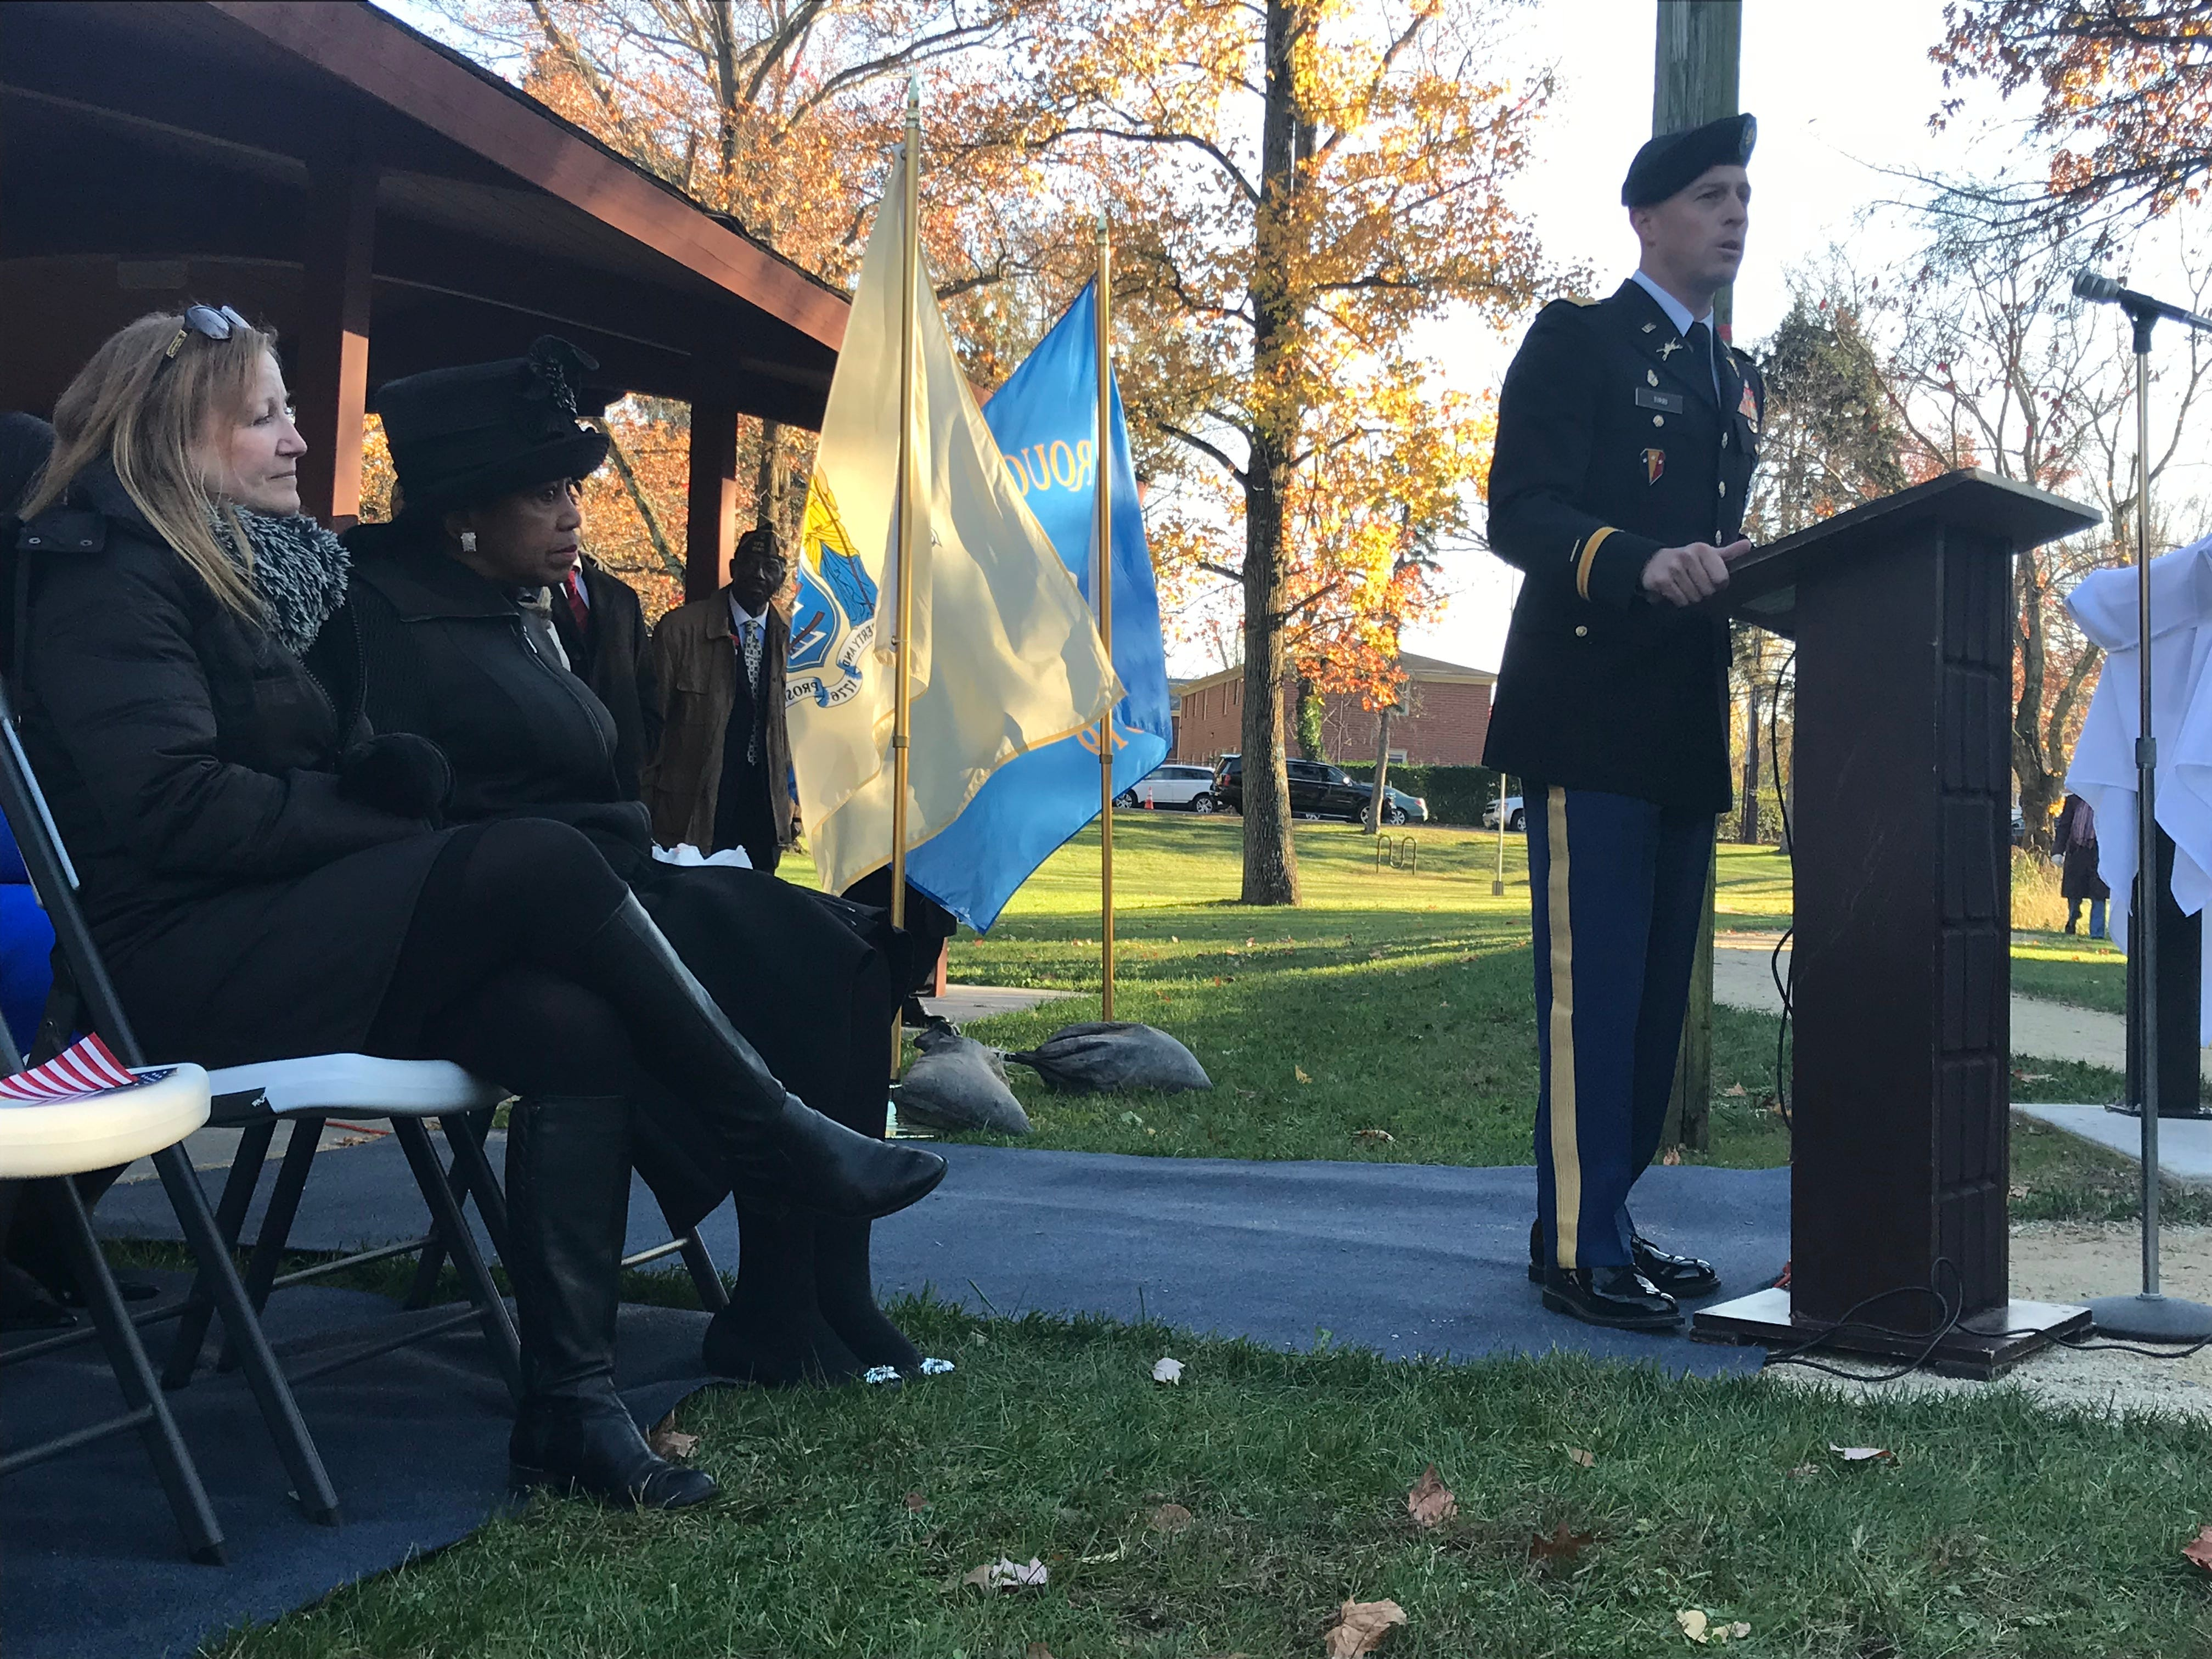 Major Vincent Tirri of the New Jersey Army National Guard, spoke on behalf of Gov. Phil Murphy Sunday at Veterans Park in Freehold Borough. The ceremony commemorated the six Lewis brothers from Freehold Borough who served in World War II.